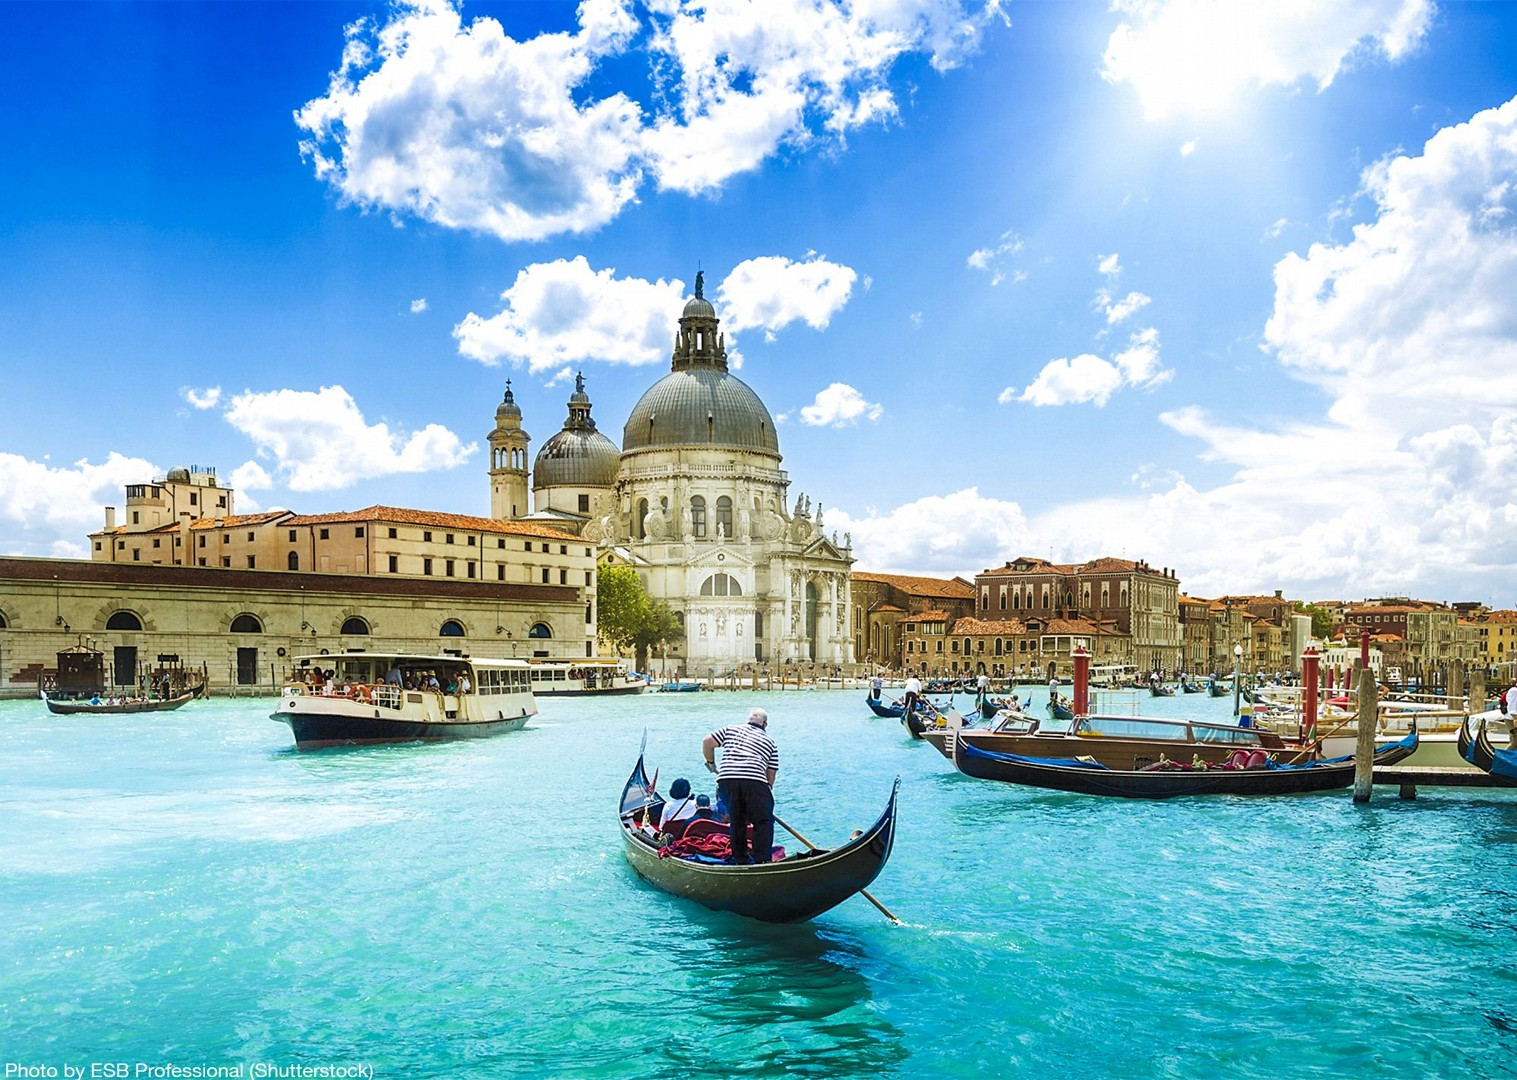 classic-venice-tour-waterways-piazza-san-marco-culture-cycling-holiday.jpg - Italy - Venetian Waterways (Venice to Mantova) - Bike and Barge Holiday - Leisure Cycling